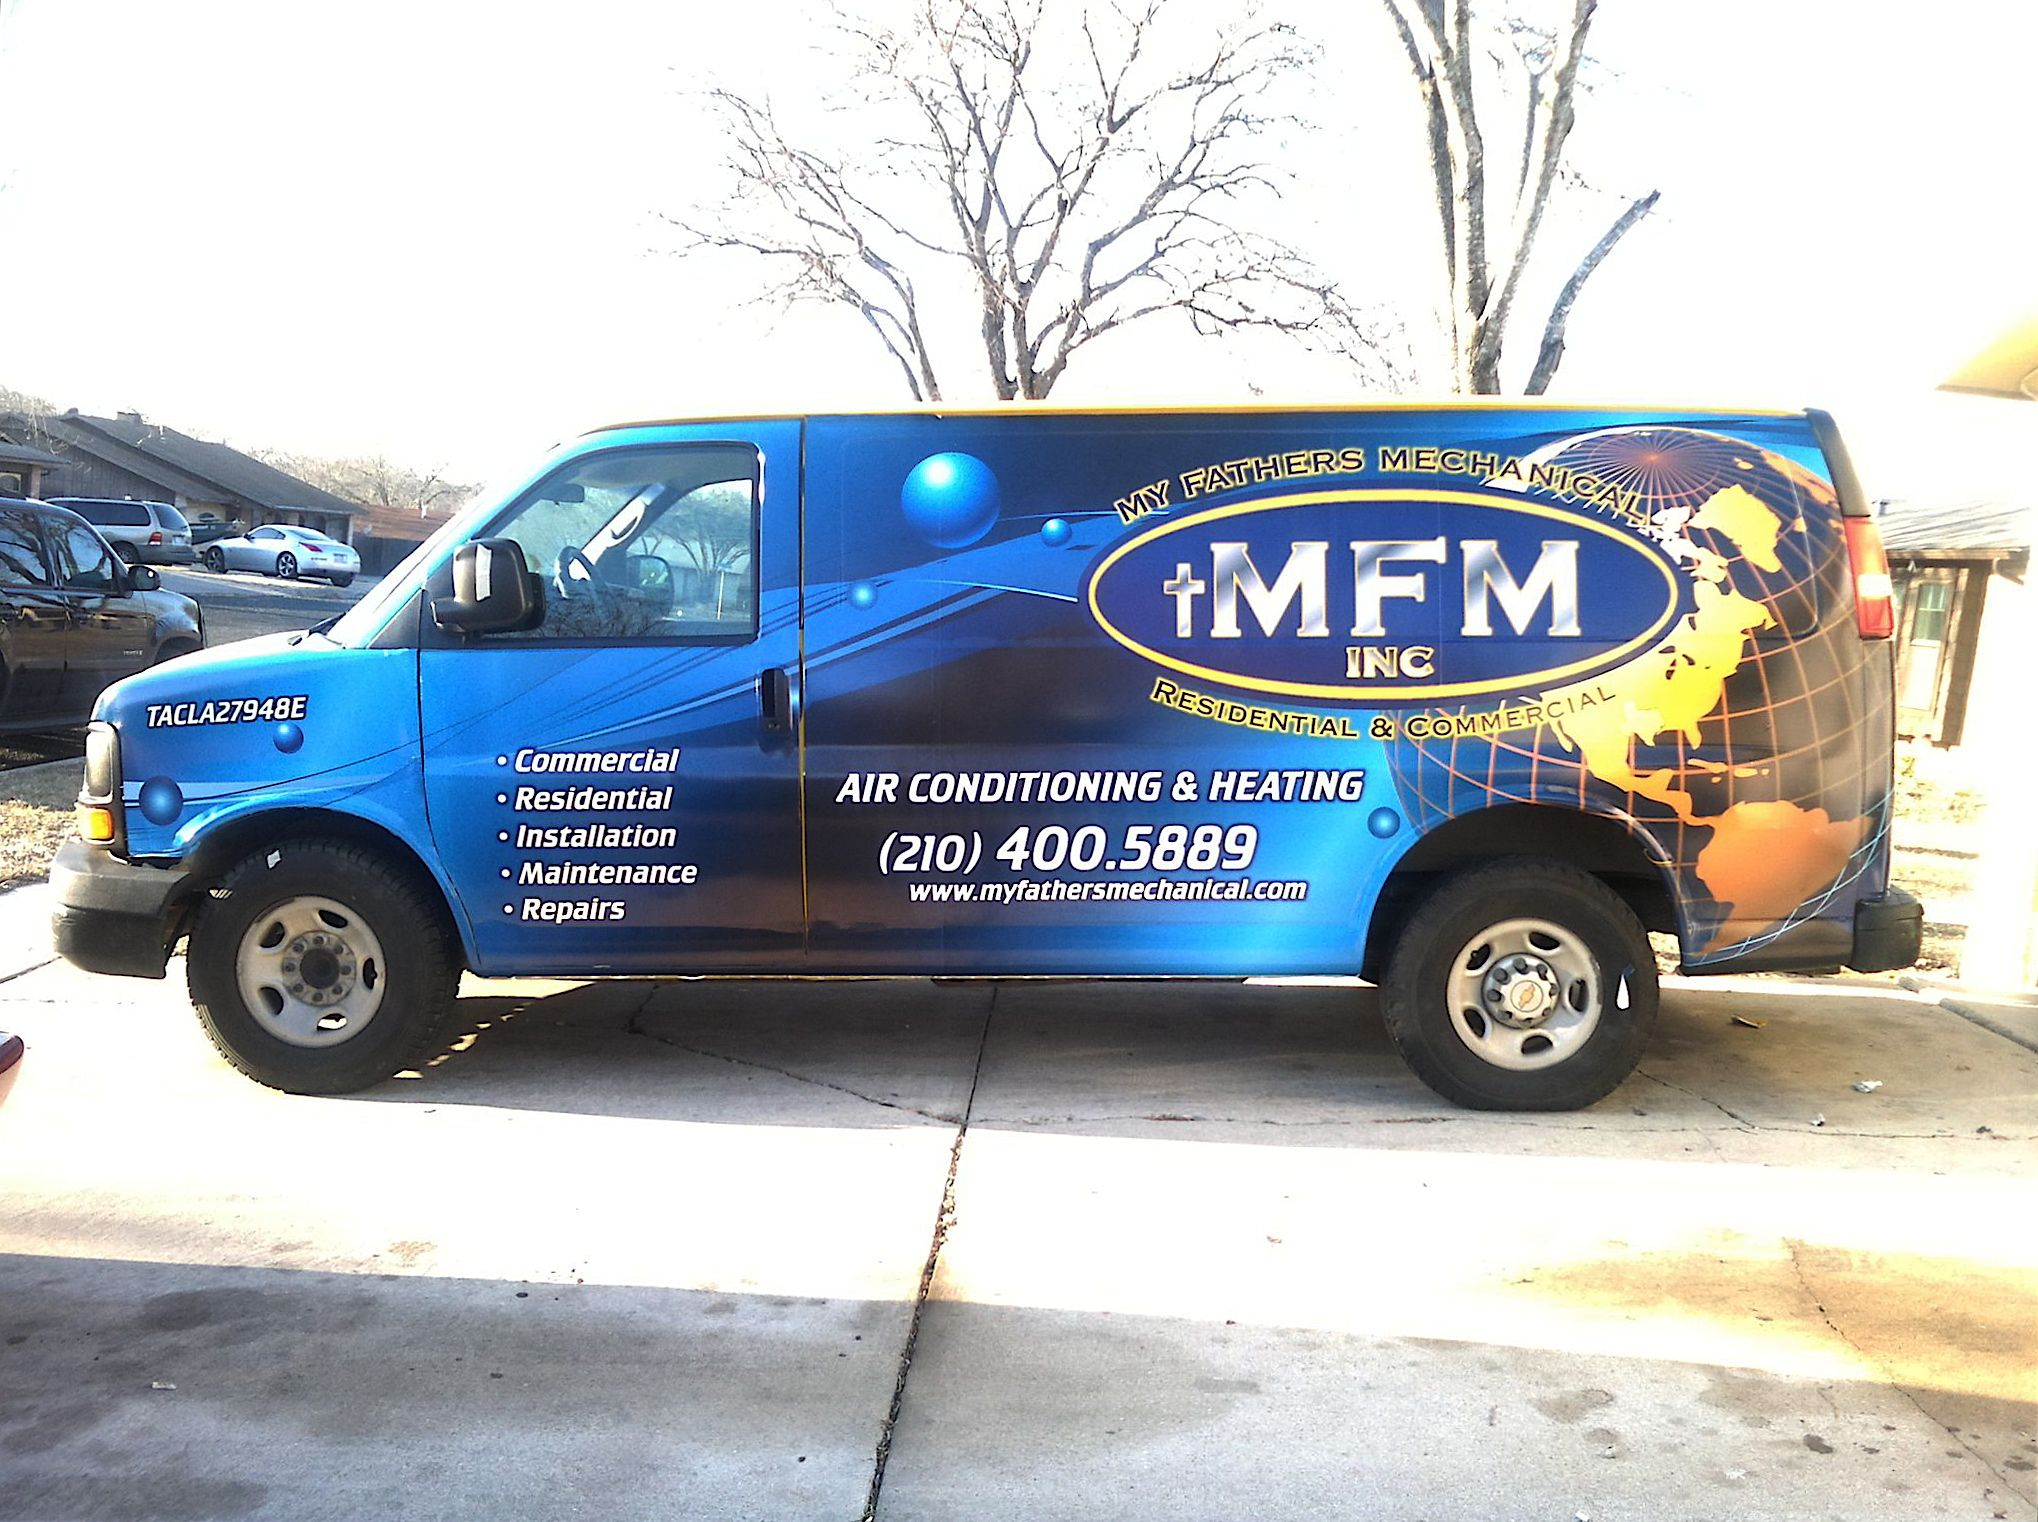 Complete van wrap for a local air conditioning company